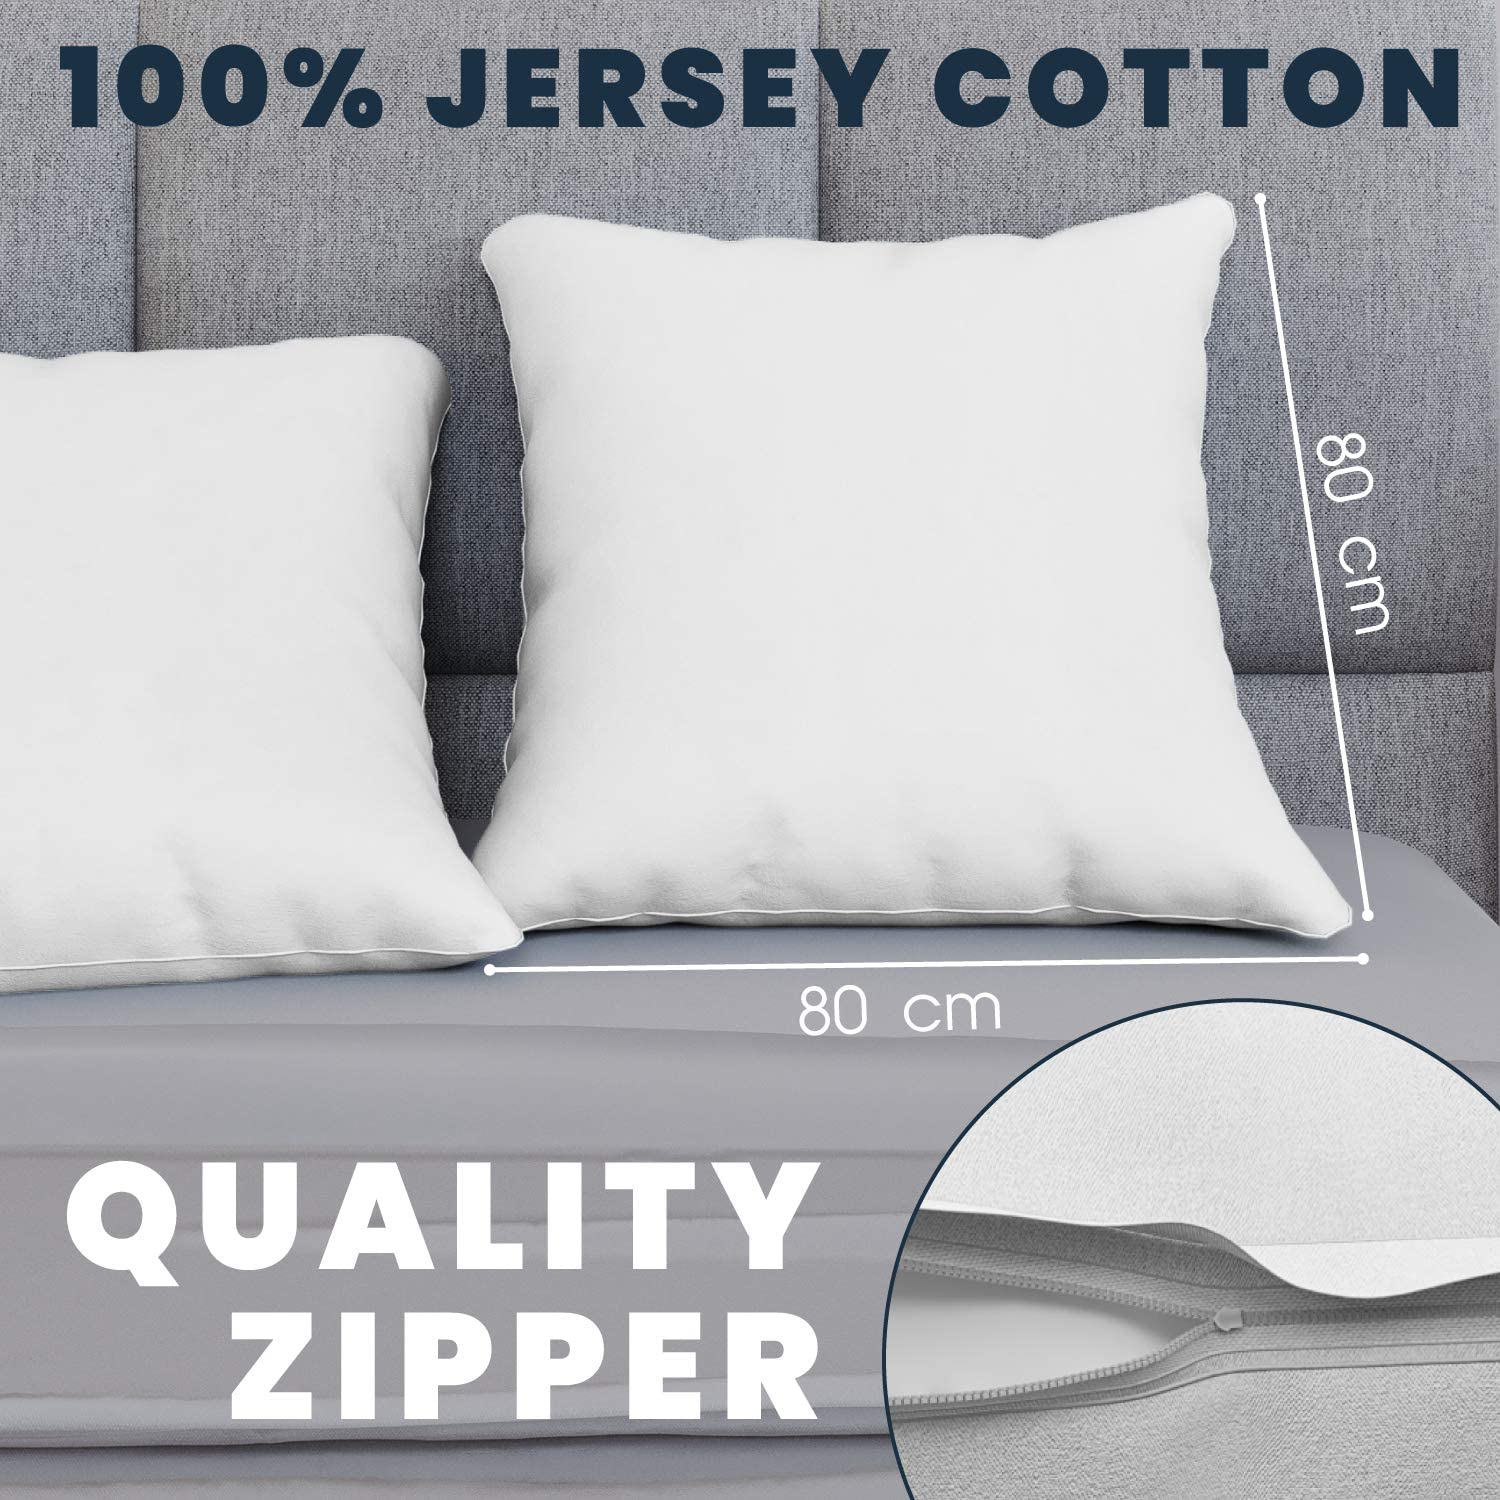 Black Cotton Resistant and Hypoallergenic Pillow Protector Pillow Cases 2 Pack 40 x 40 100/% Jersey Cotton bedding double bed Pillowcase Dreamzie Set of 2 x Pillowcases 40x40 cm